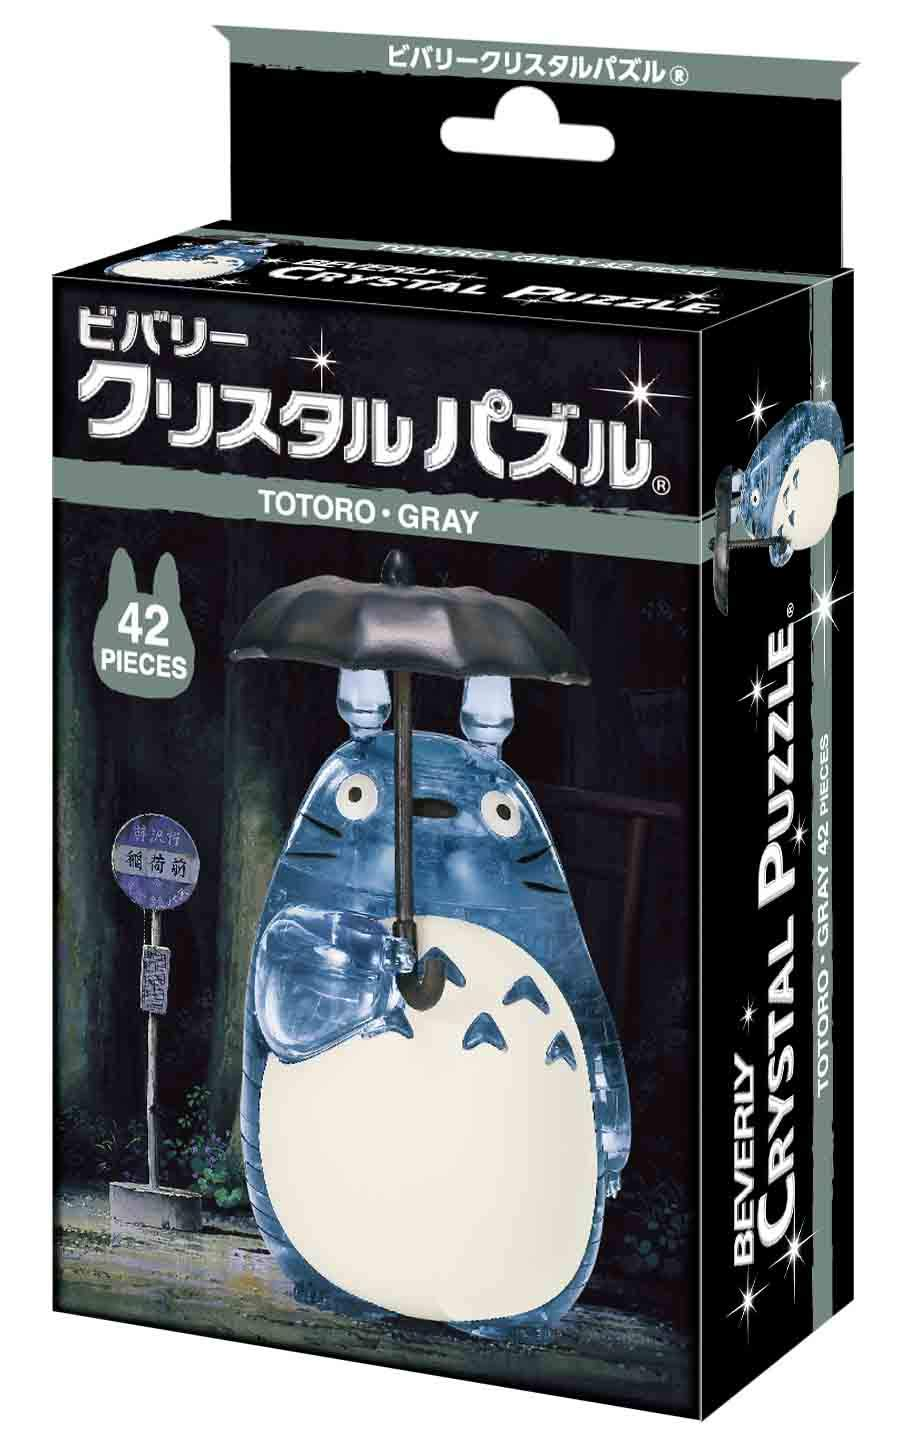 Beverly 42 Piece Crystal Puzzle Totoro Gray